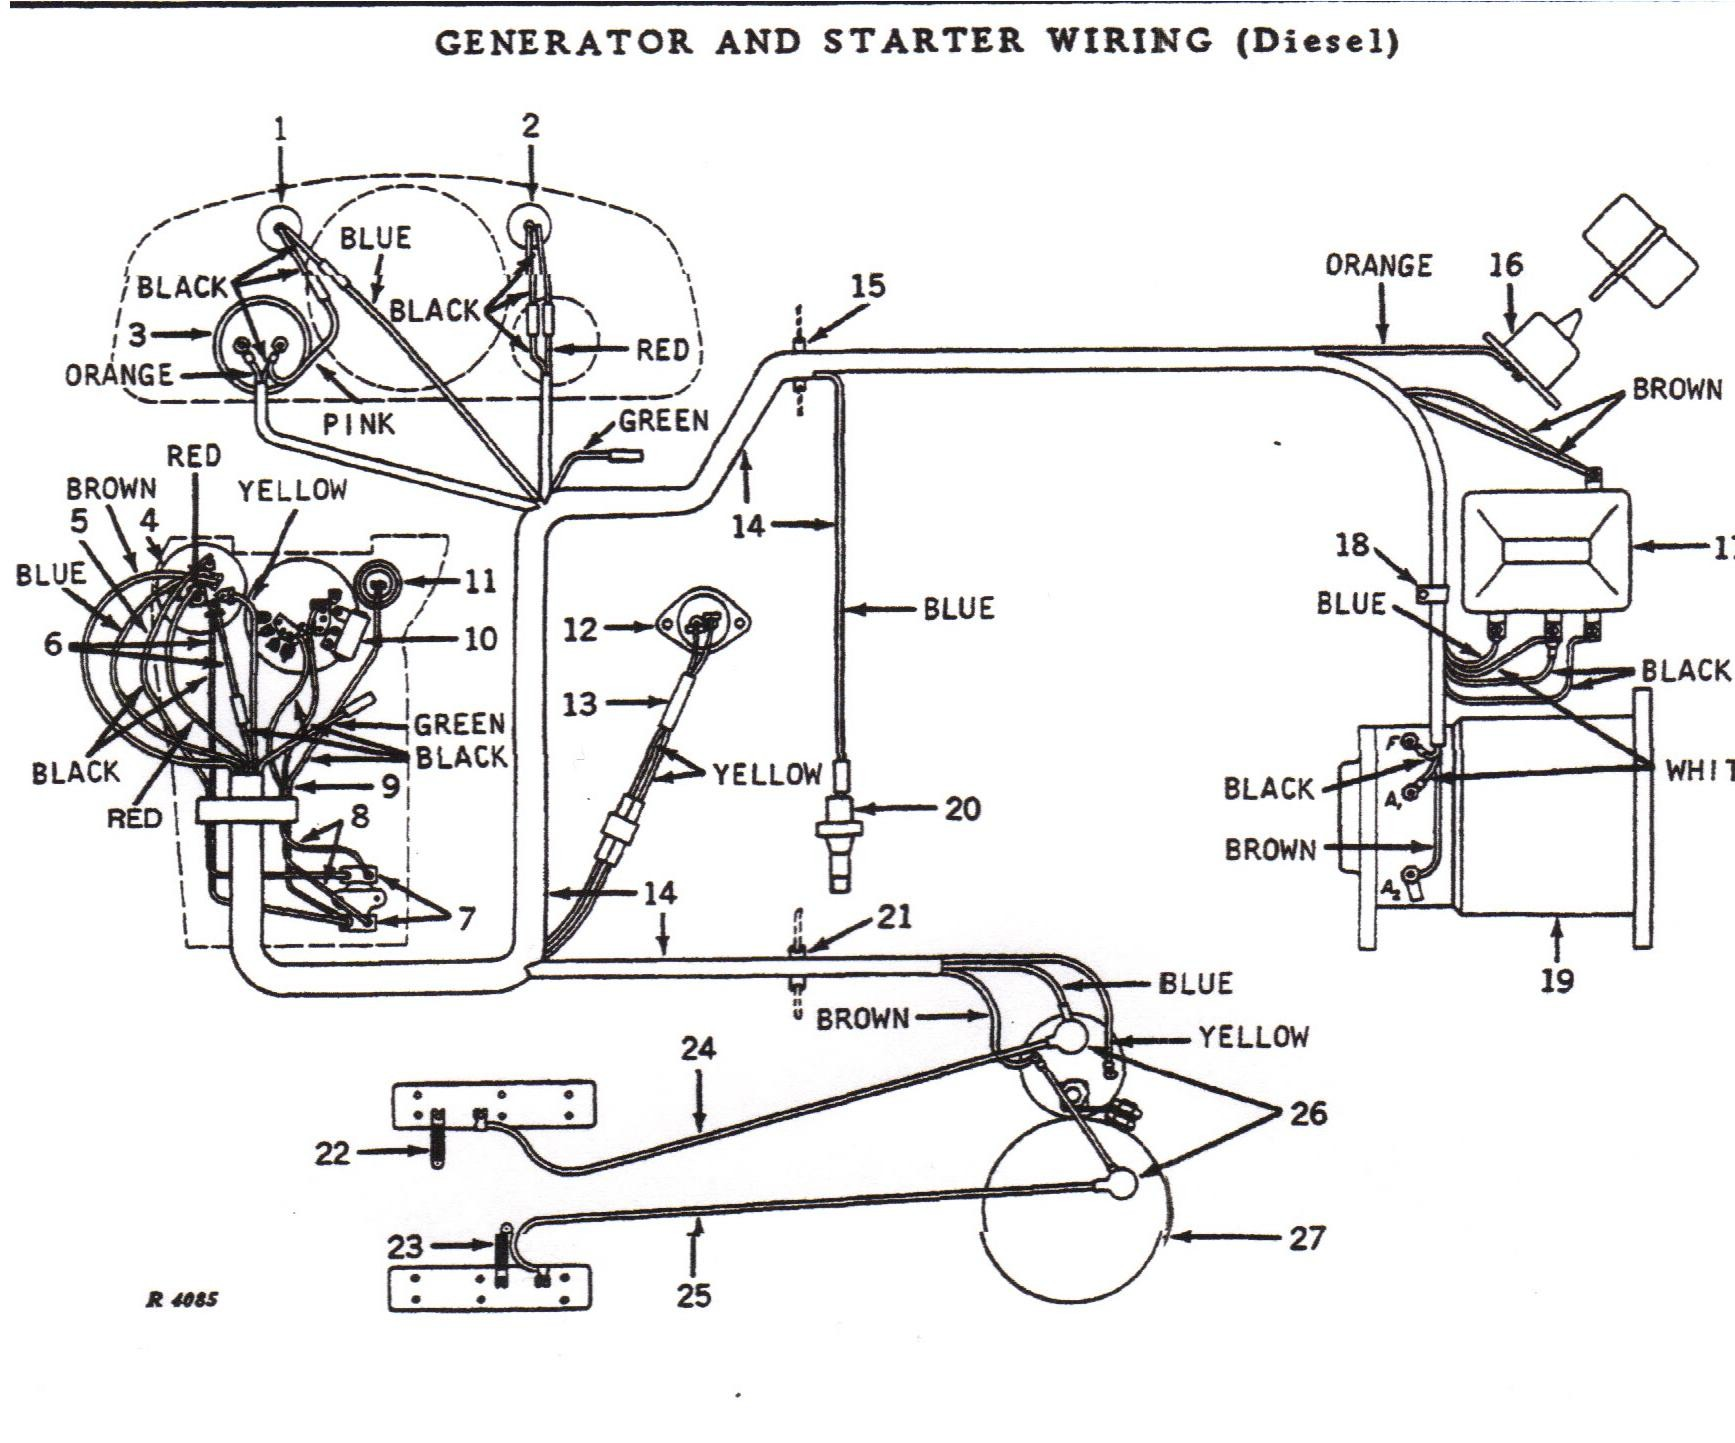 Wiring Diagram for 1970 Jd 4020 Need Wiring Diagram for Deere 4020 24v Of Wiring Diagram for 1970 Jd 4020